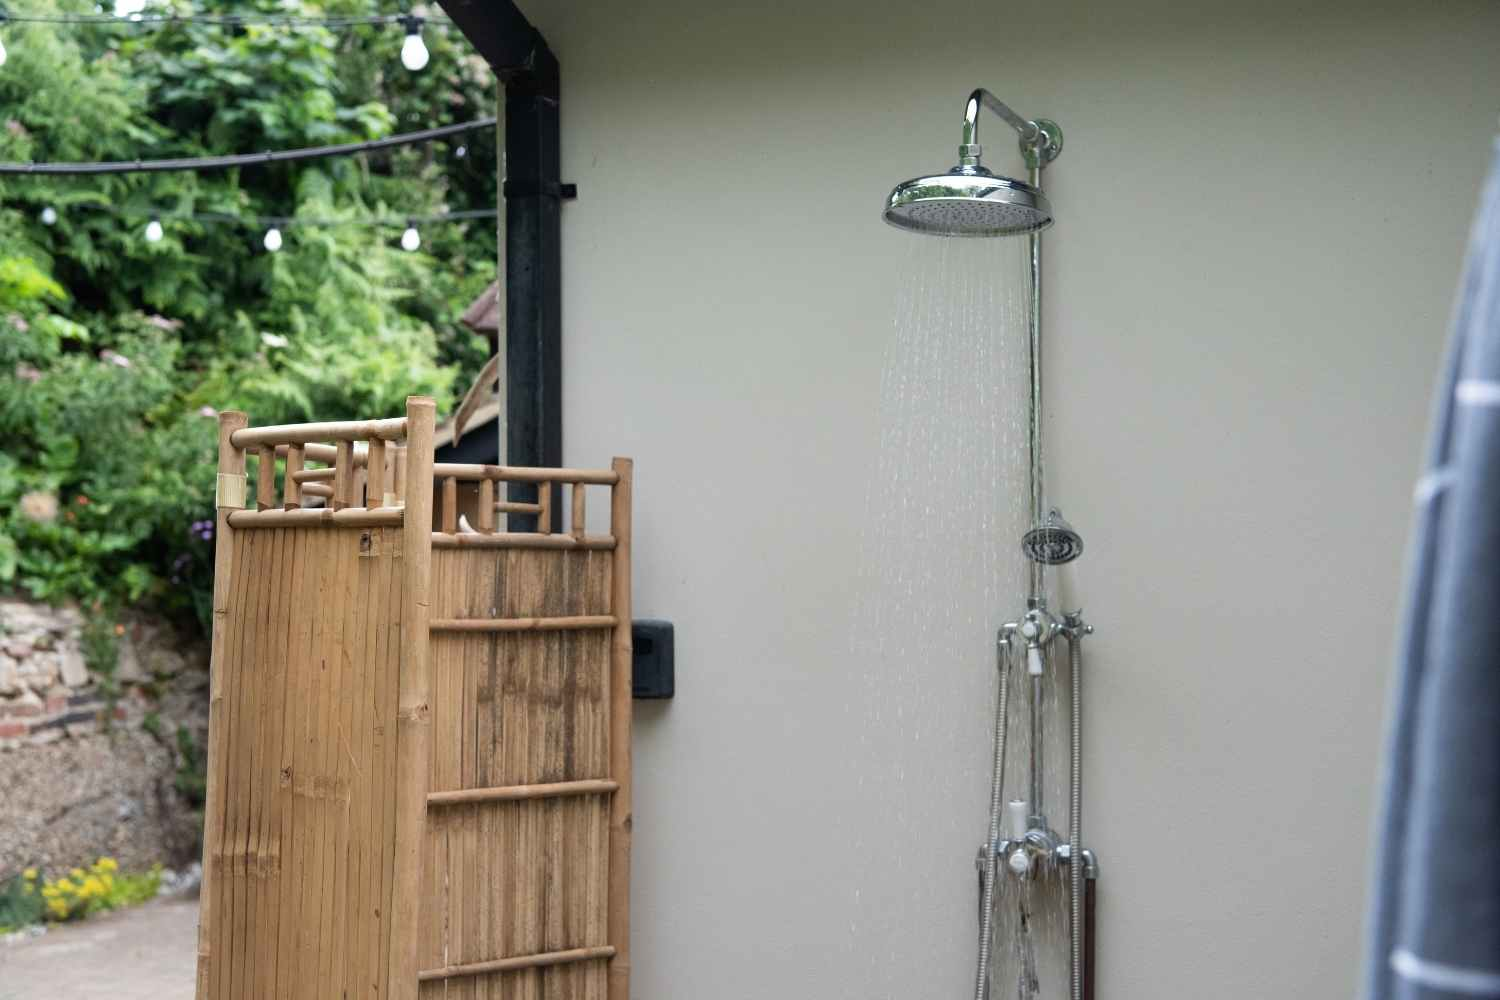 Outdoor shower - great for rinsing off the sand!